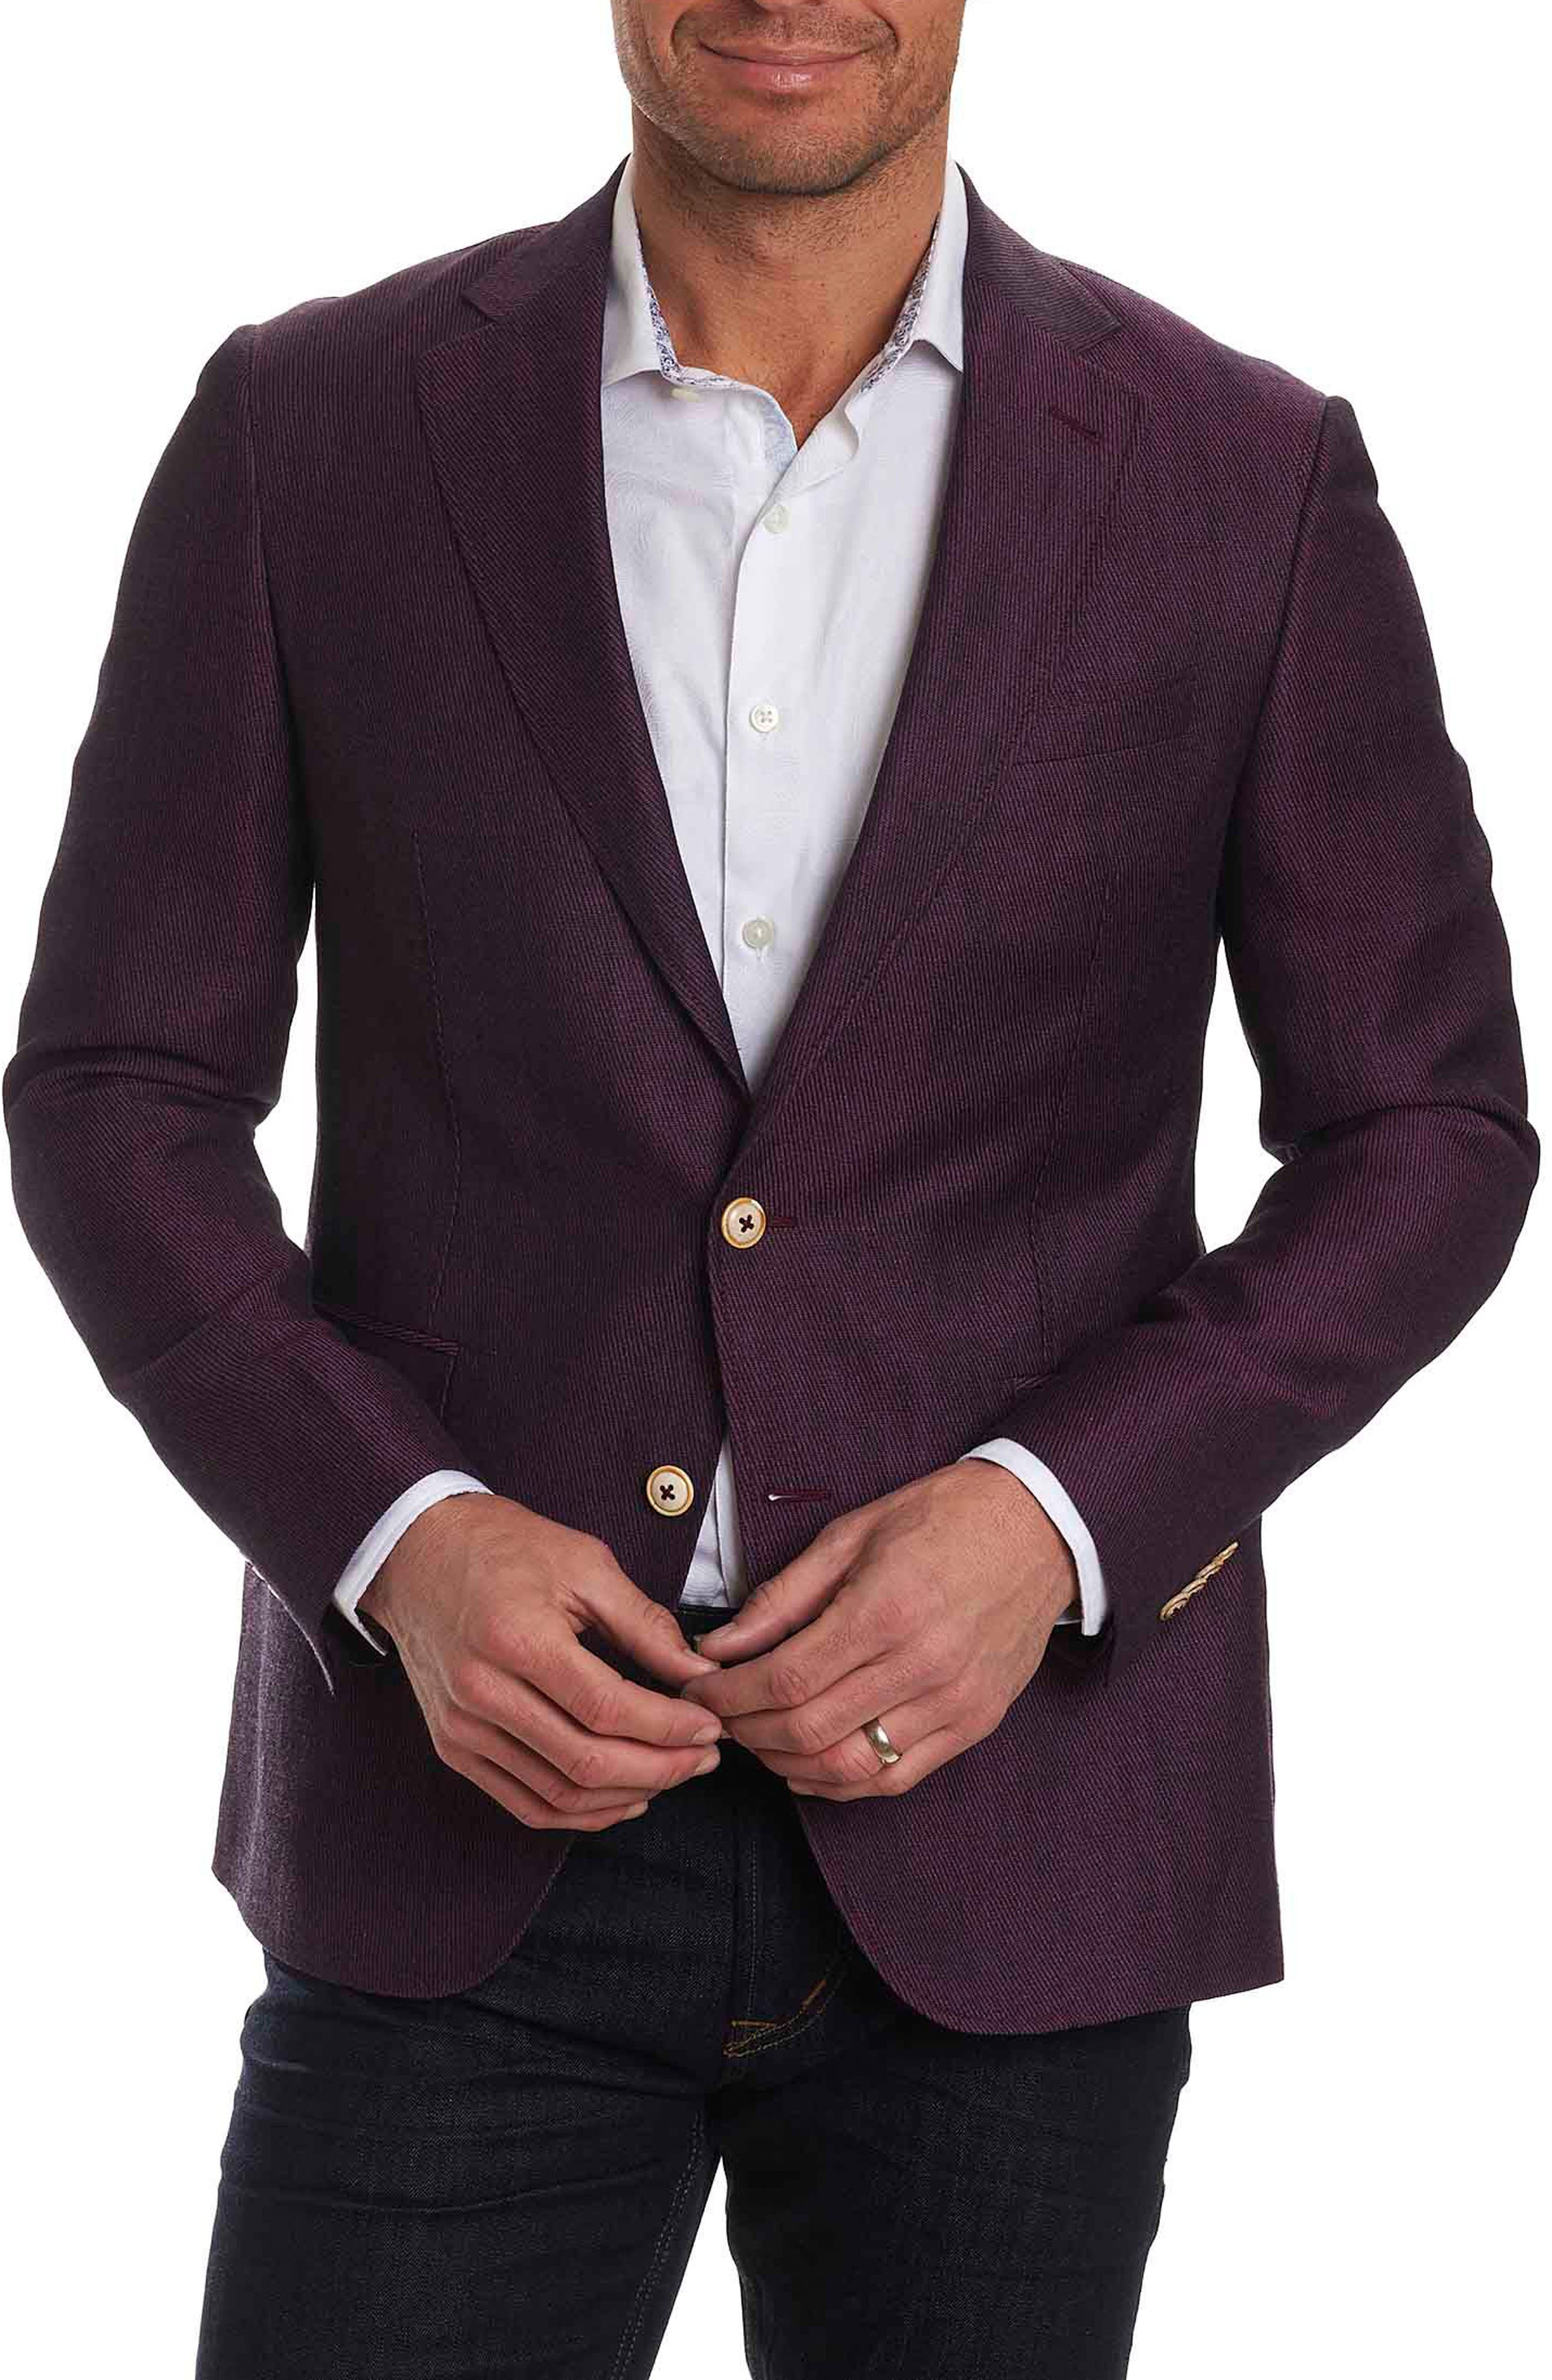 On the Road Linen & Wool Jacket,                         Main,                         color, 652